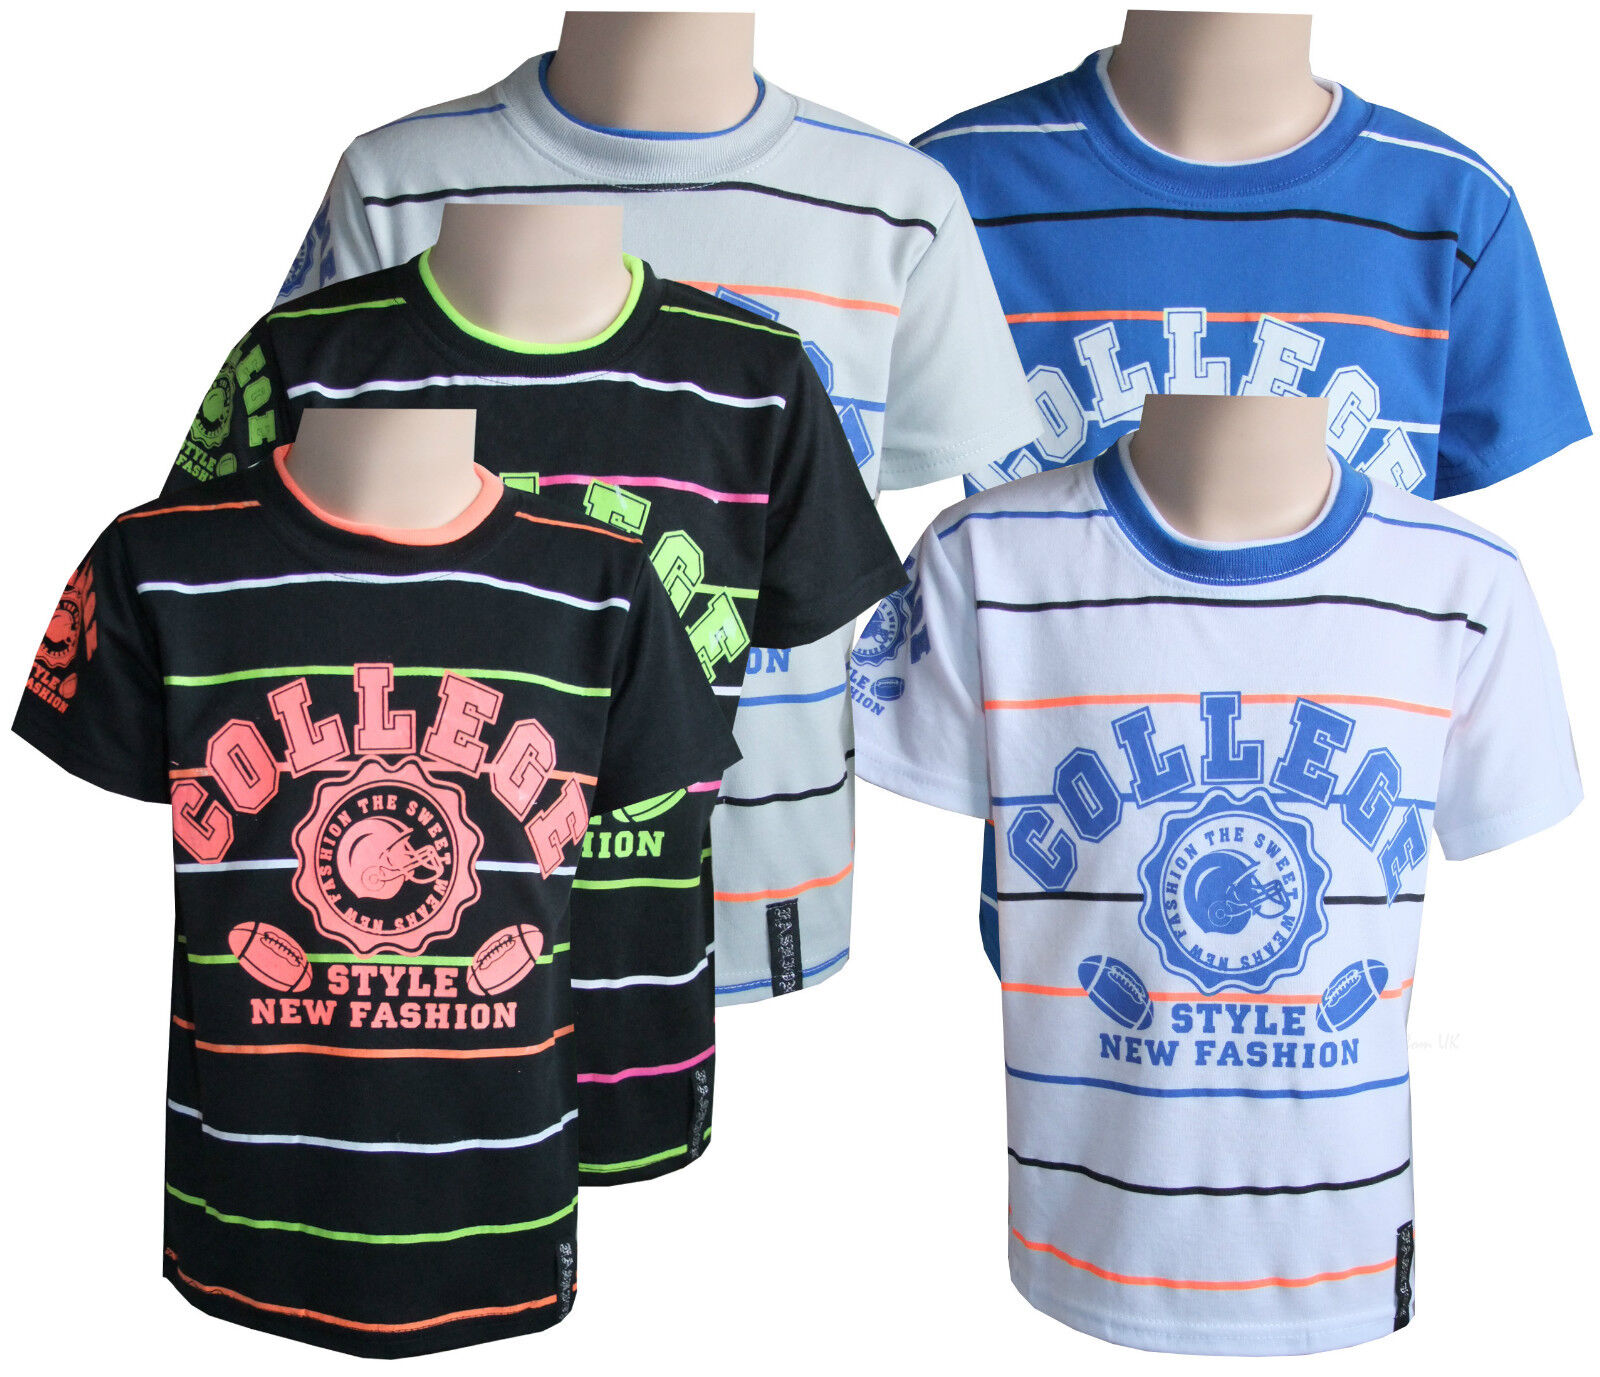 96279ea4 Boys Kids T-Shirts Casual Wear Crew Neck White Short Sleeve Striped Tops Yr  4-14